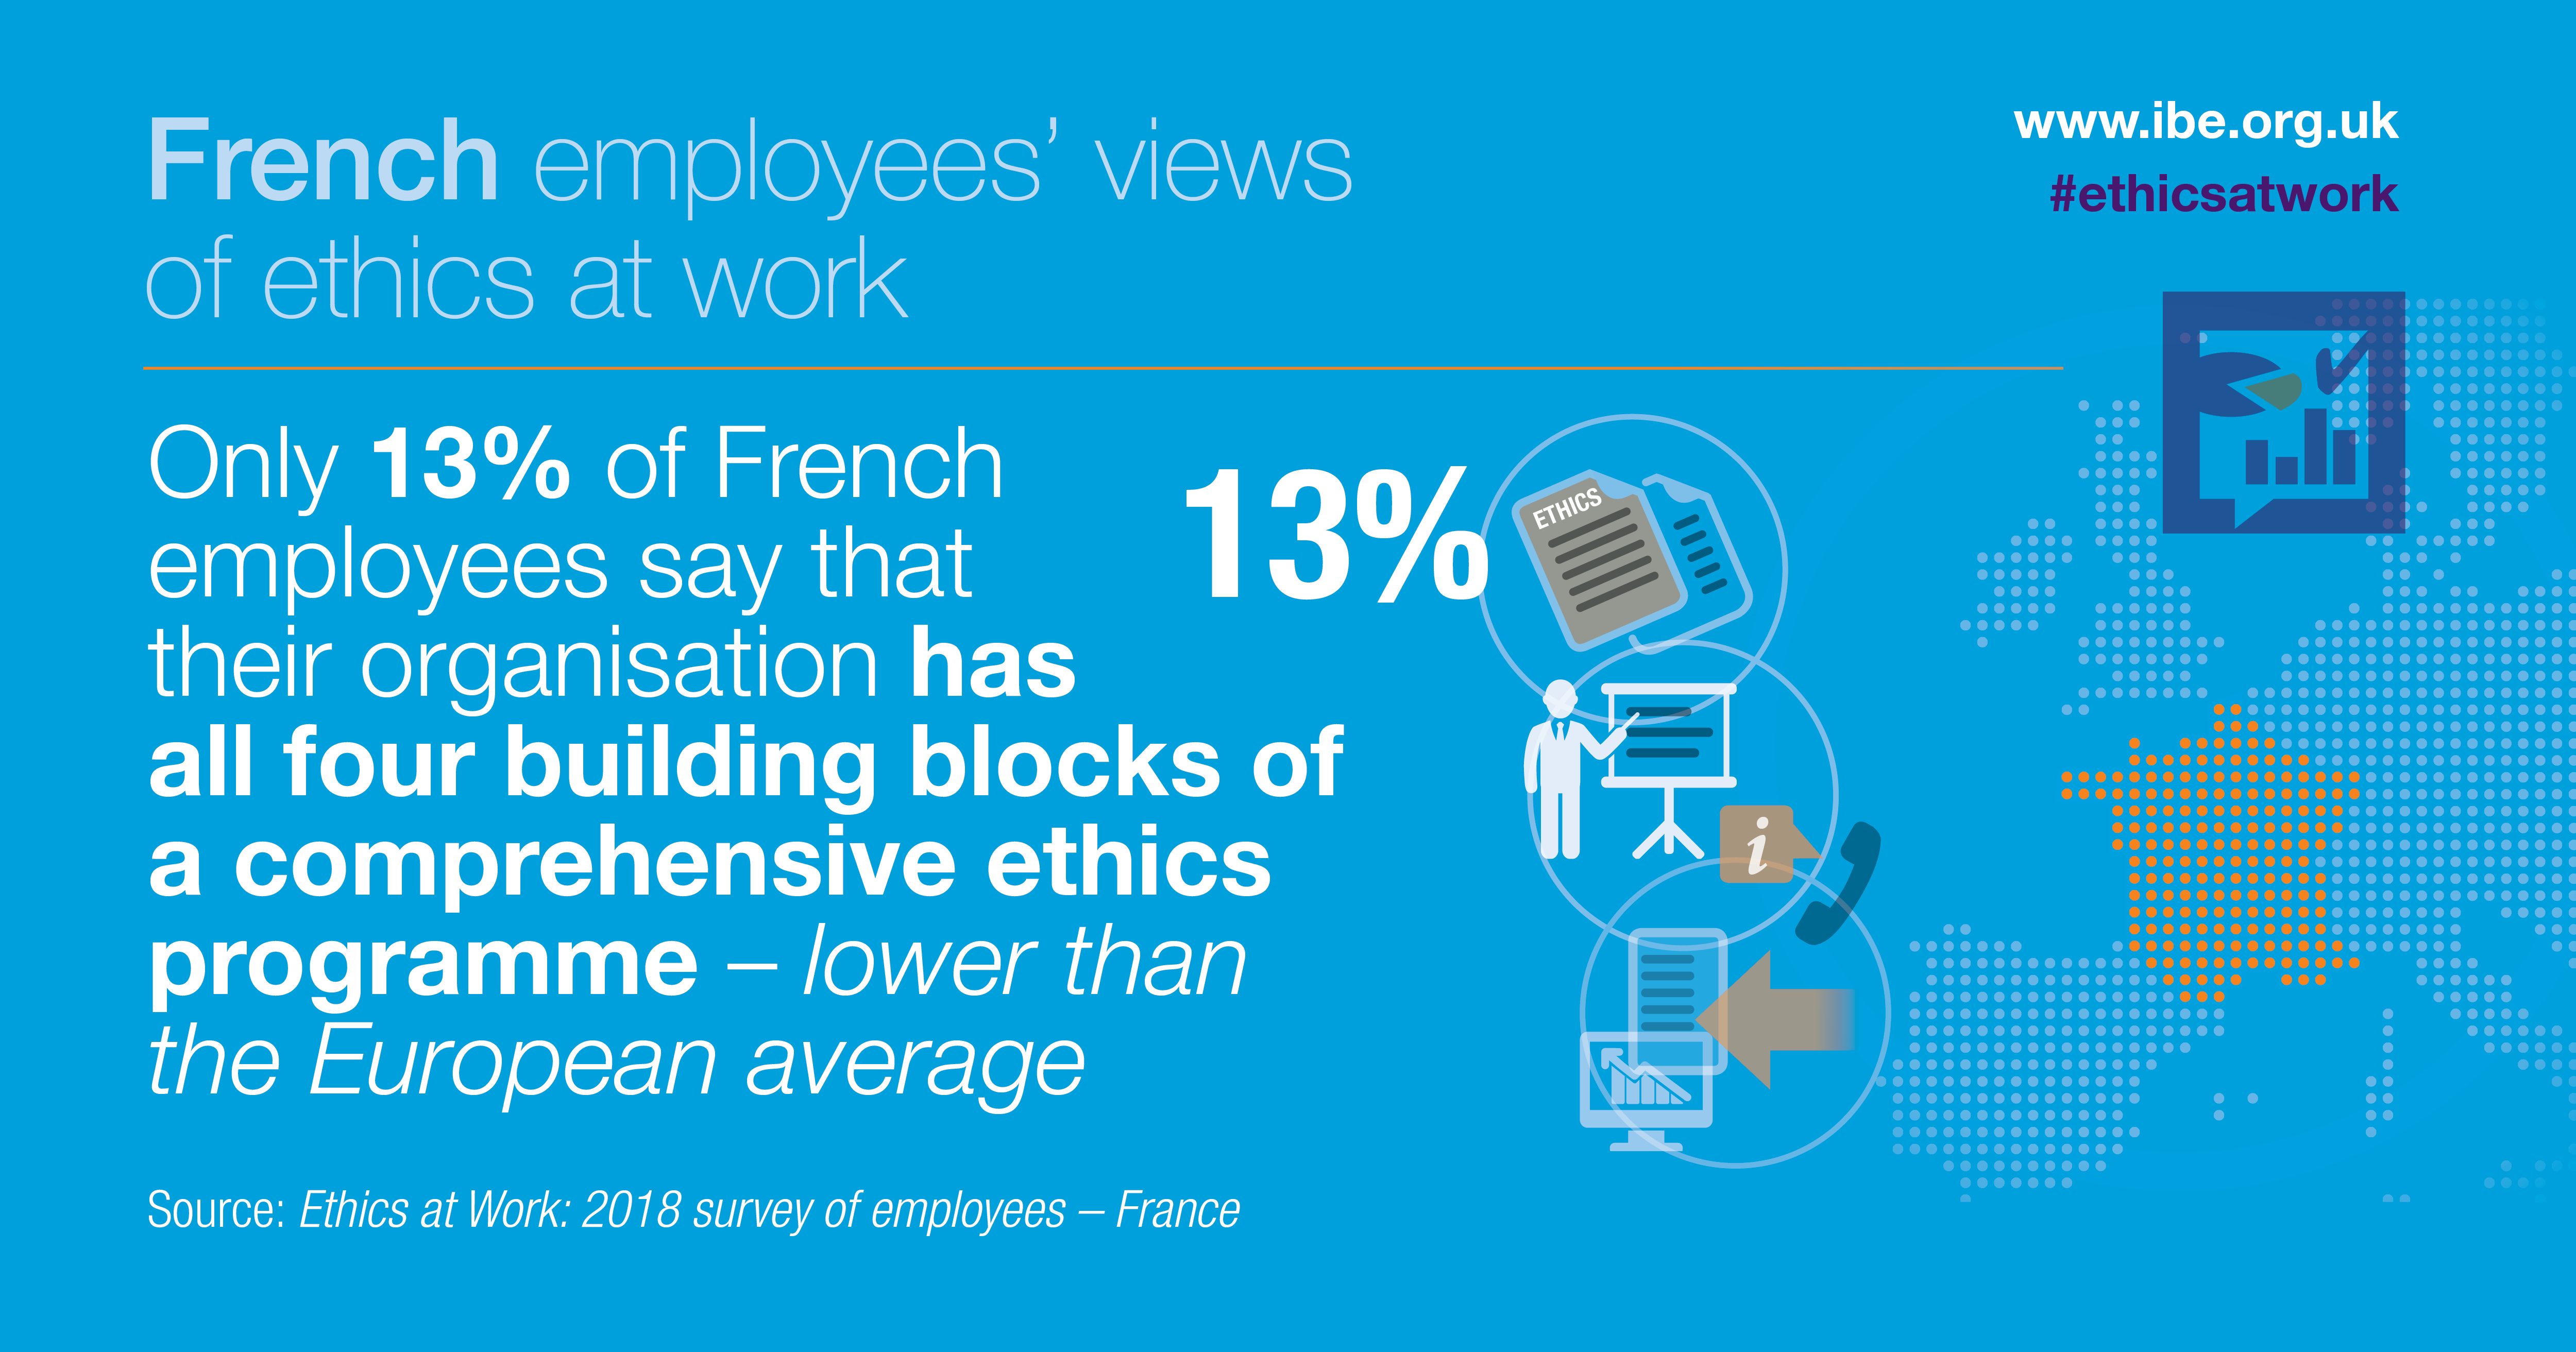 One in five French employees say they have felt under